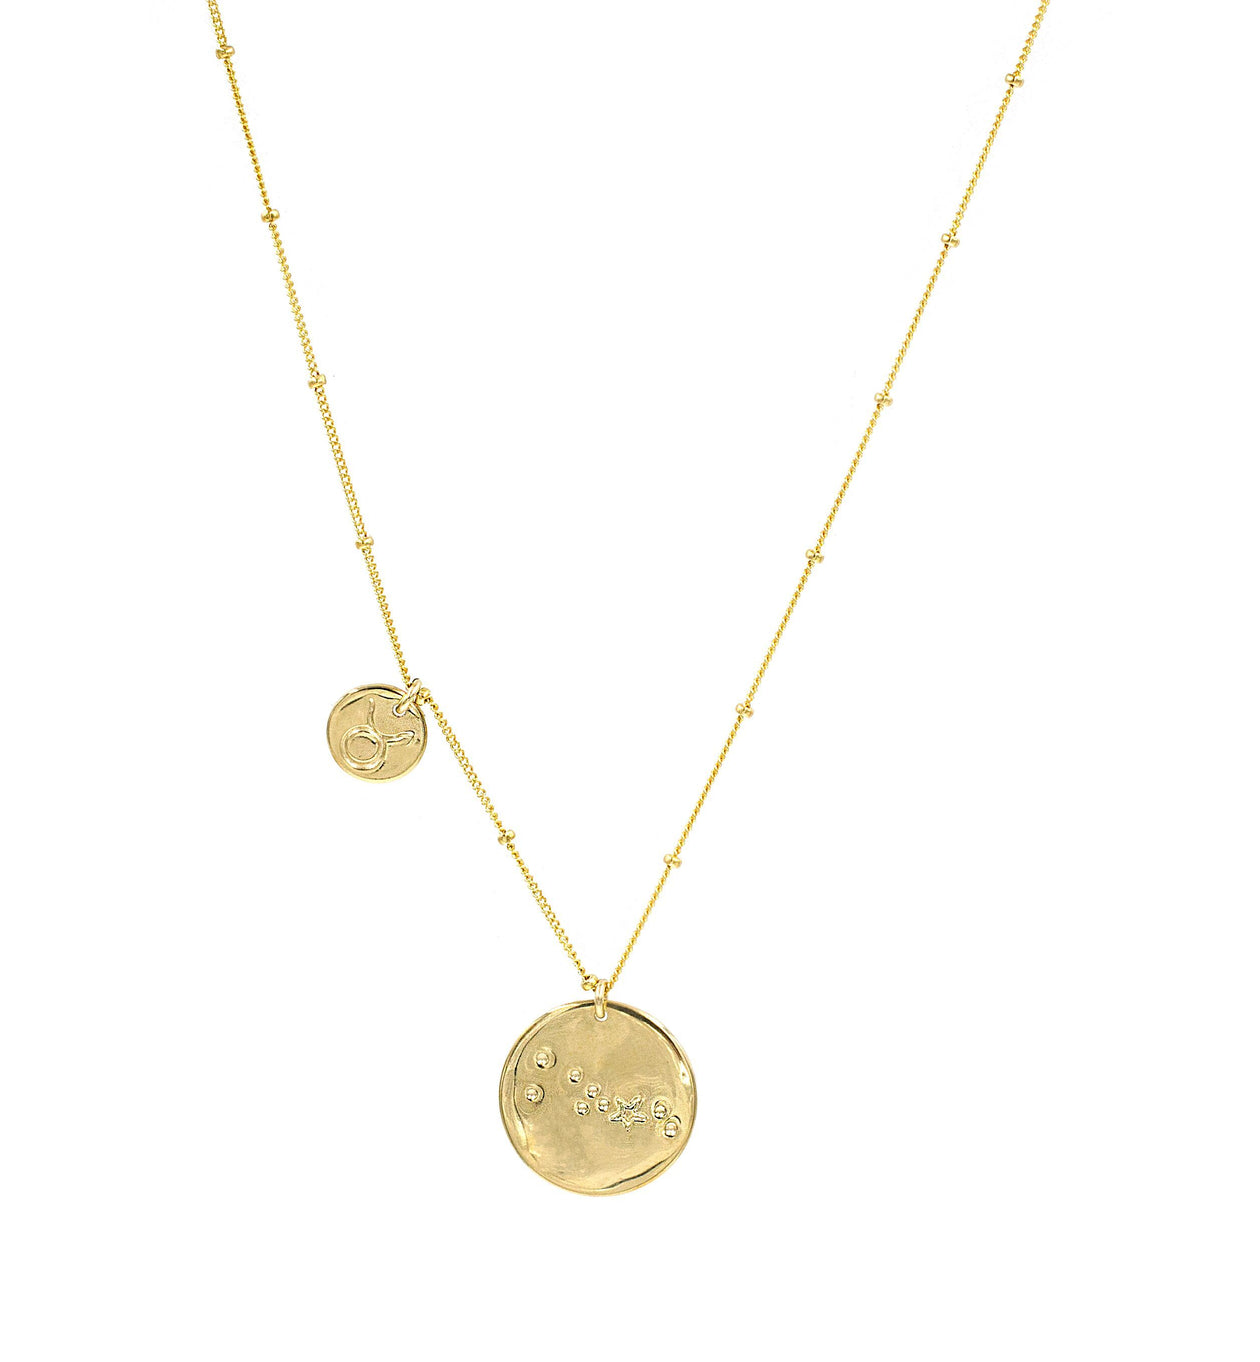 Taurus Constellation Necklace